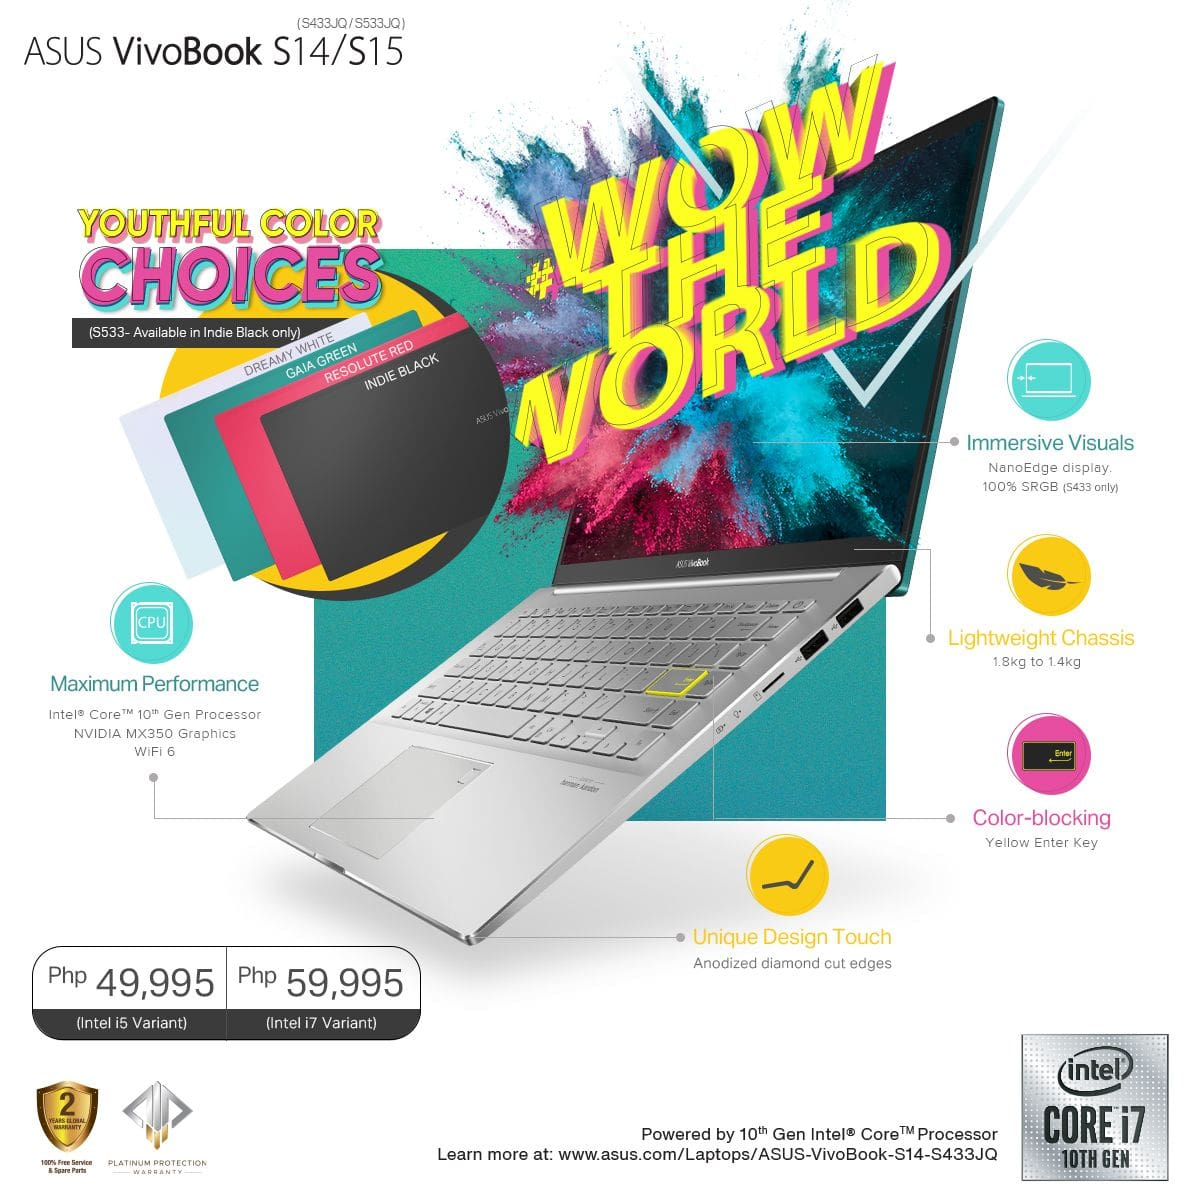 asus vivobook s14 and s15 launch